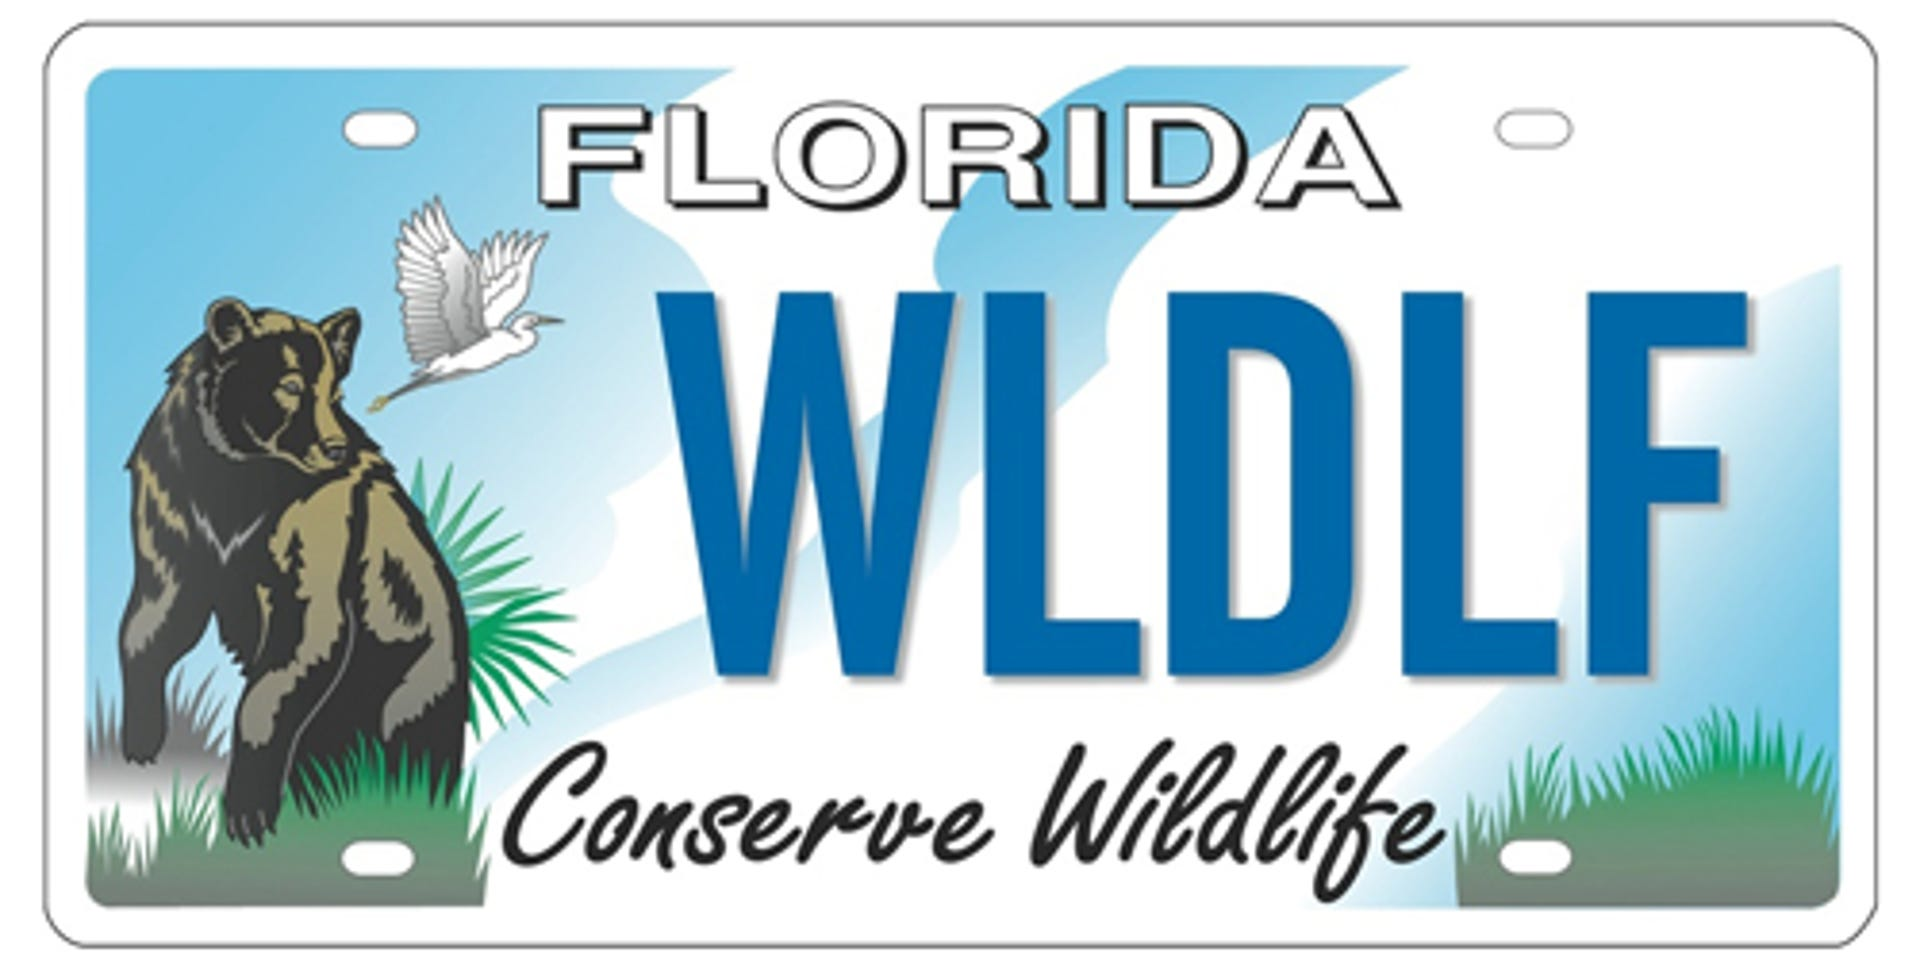 Photos: Vote for your favorite 'Conserve Wildlife' license plate design